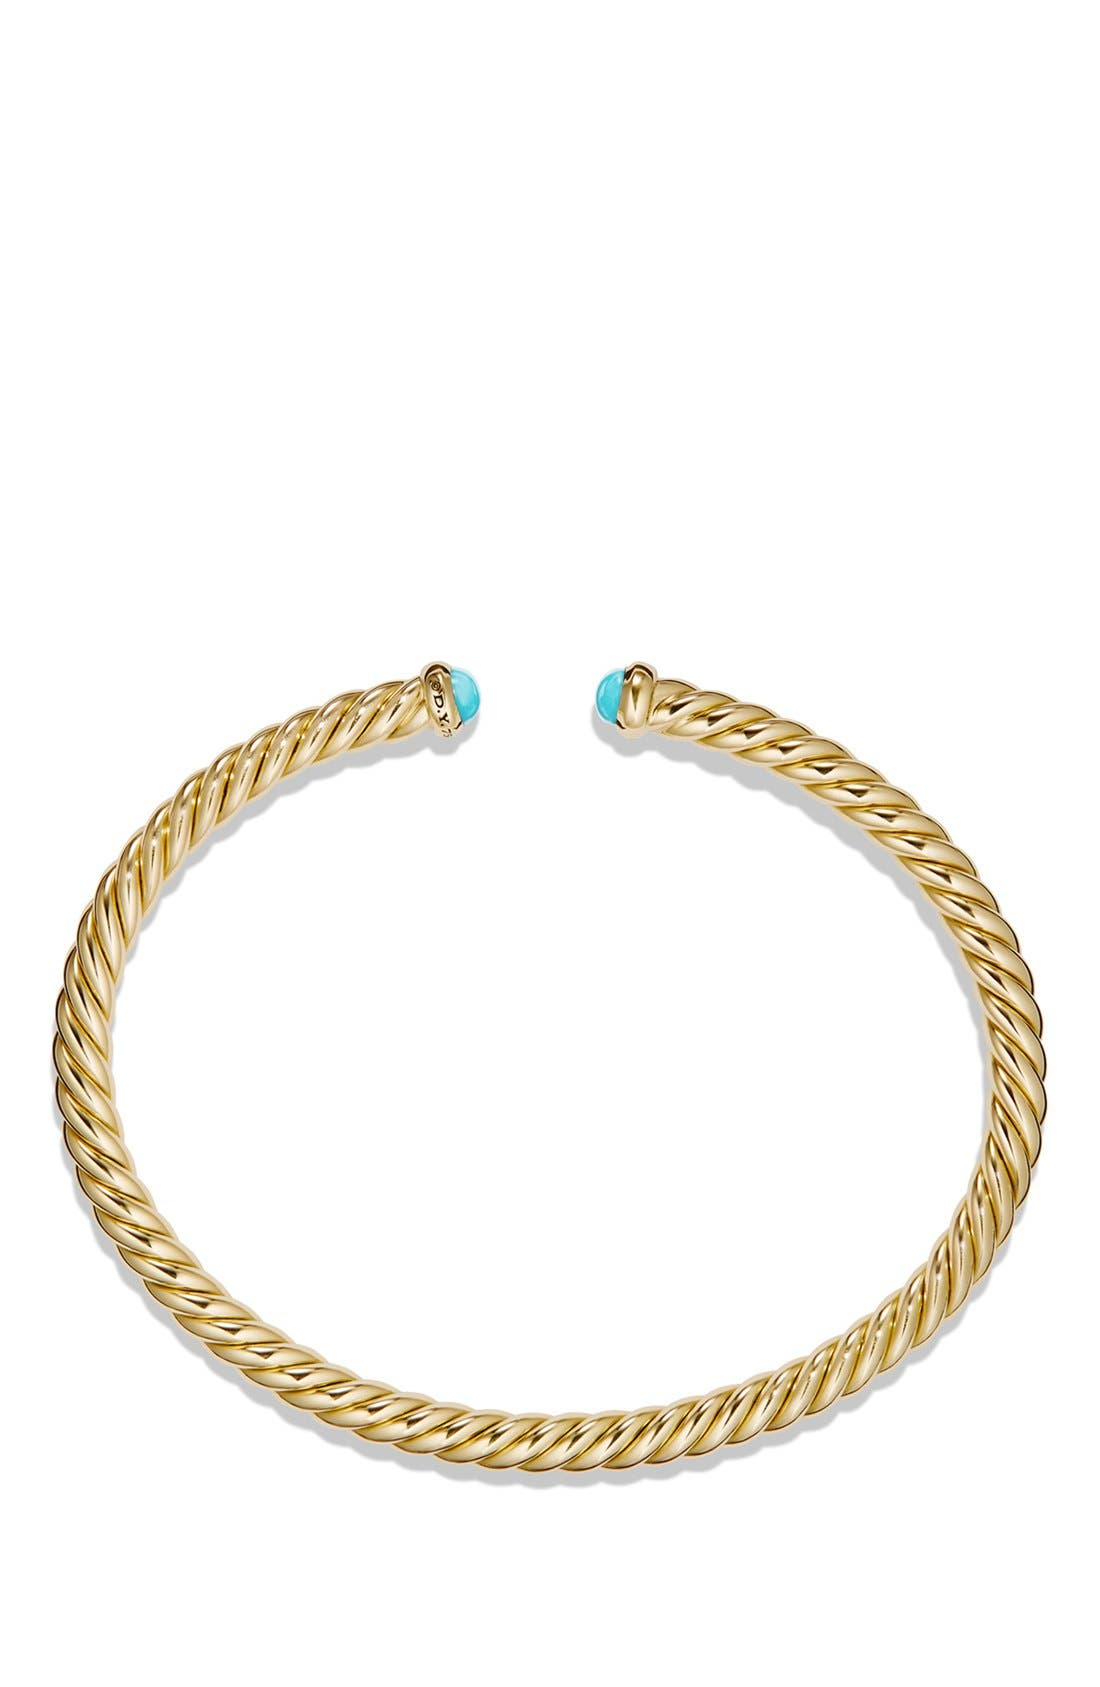 DAVID YURMAN, Cable Spira Bracelet with Semiprecious Stones in 18K Gold, Alternate thumbnail 2, color, TURQUOISE